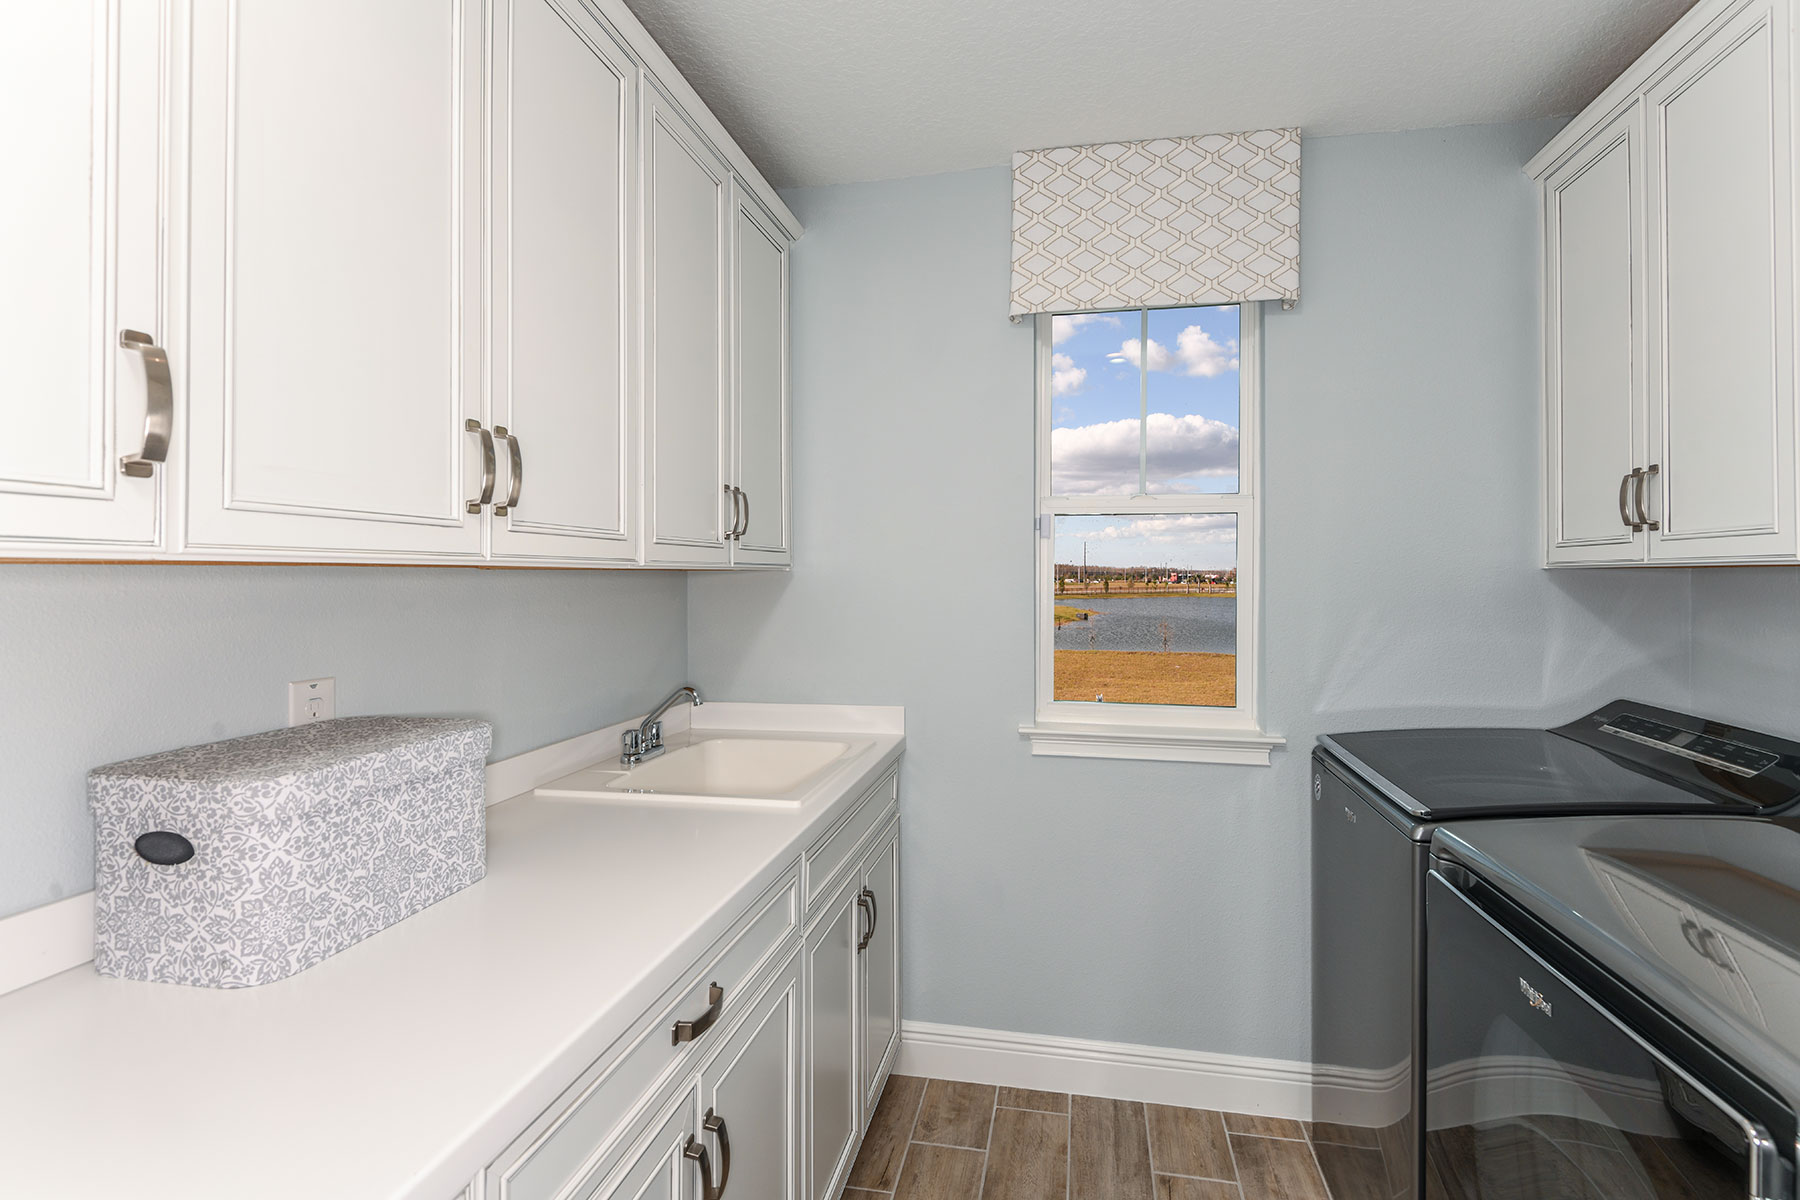 Myrtle Plan Laundry at Parkview at Long Lake Ranch in Lutz Florida by Mattamy Homes